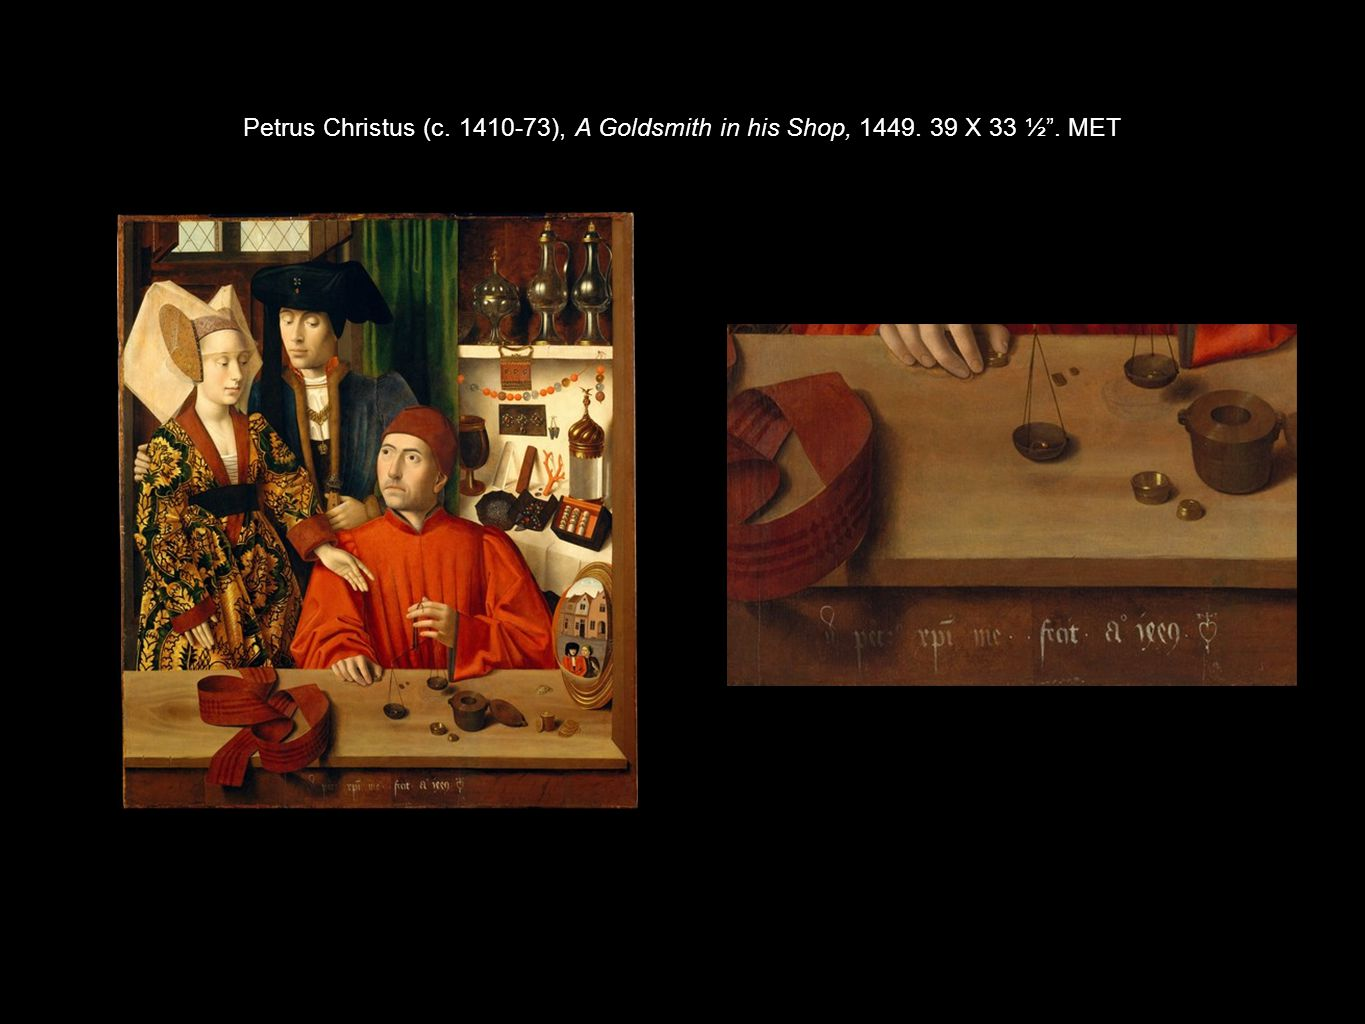 Petrus Christus (c. 1410-73), A Goldsmith in his Shop, 1449. 39 X 33 ½ . MET